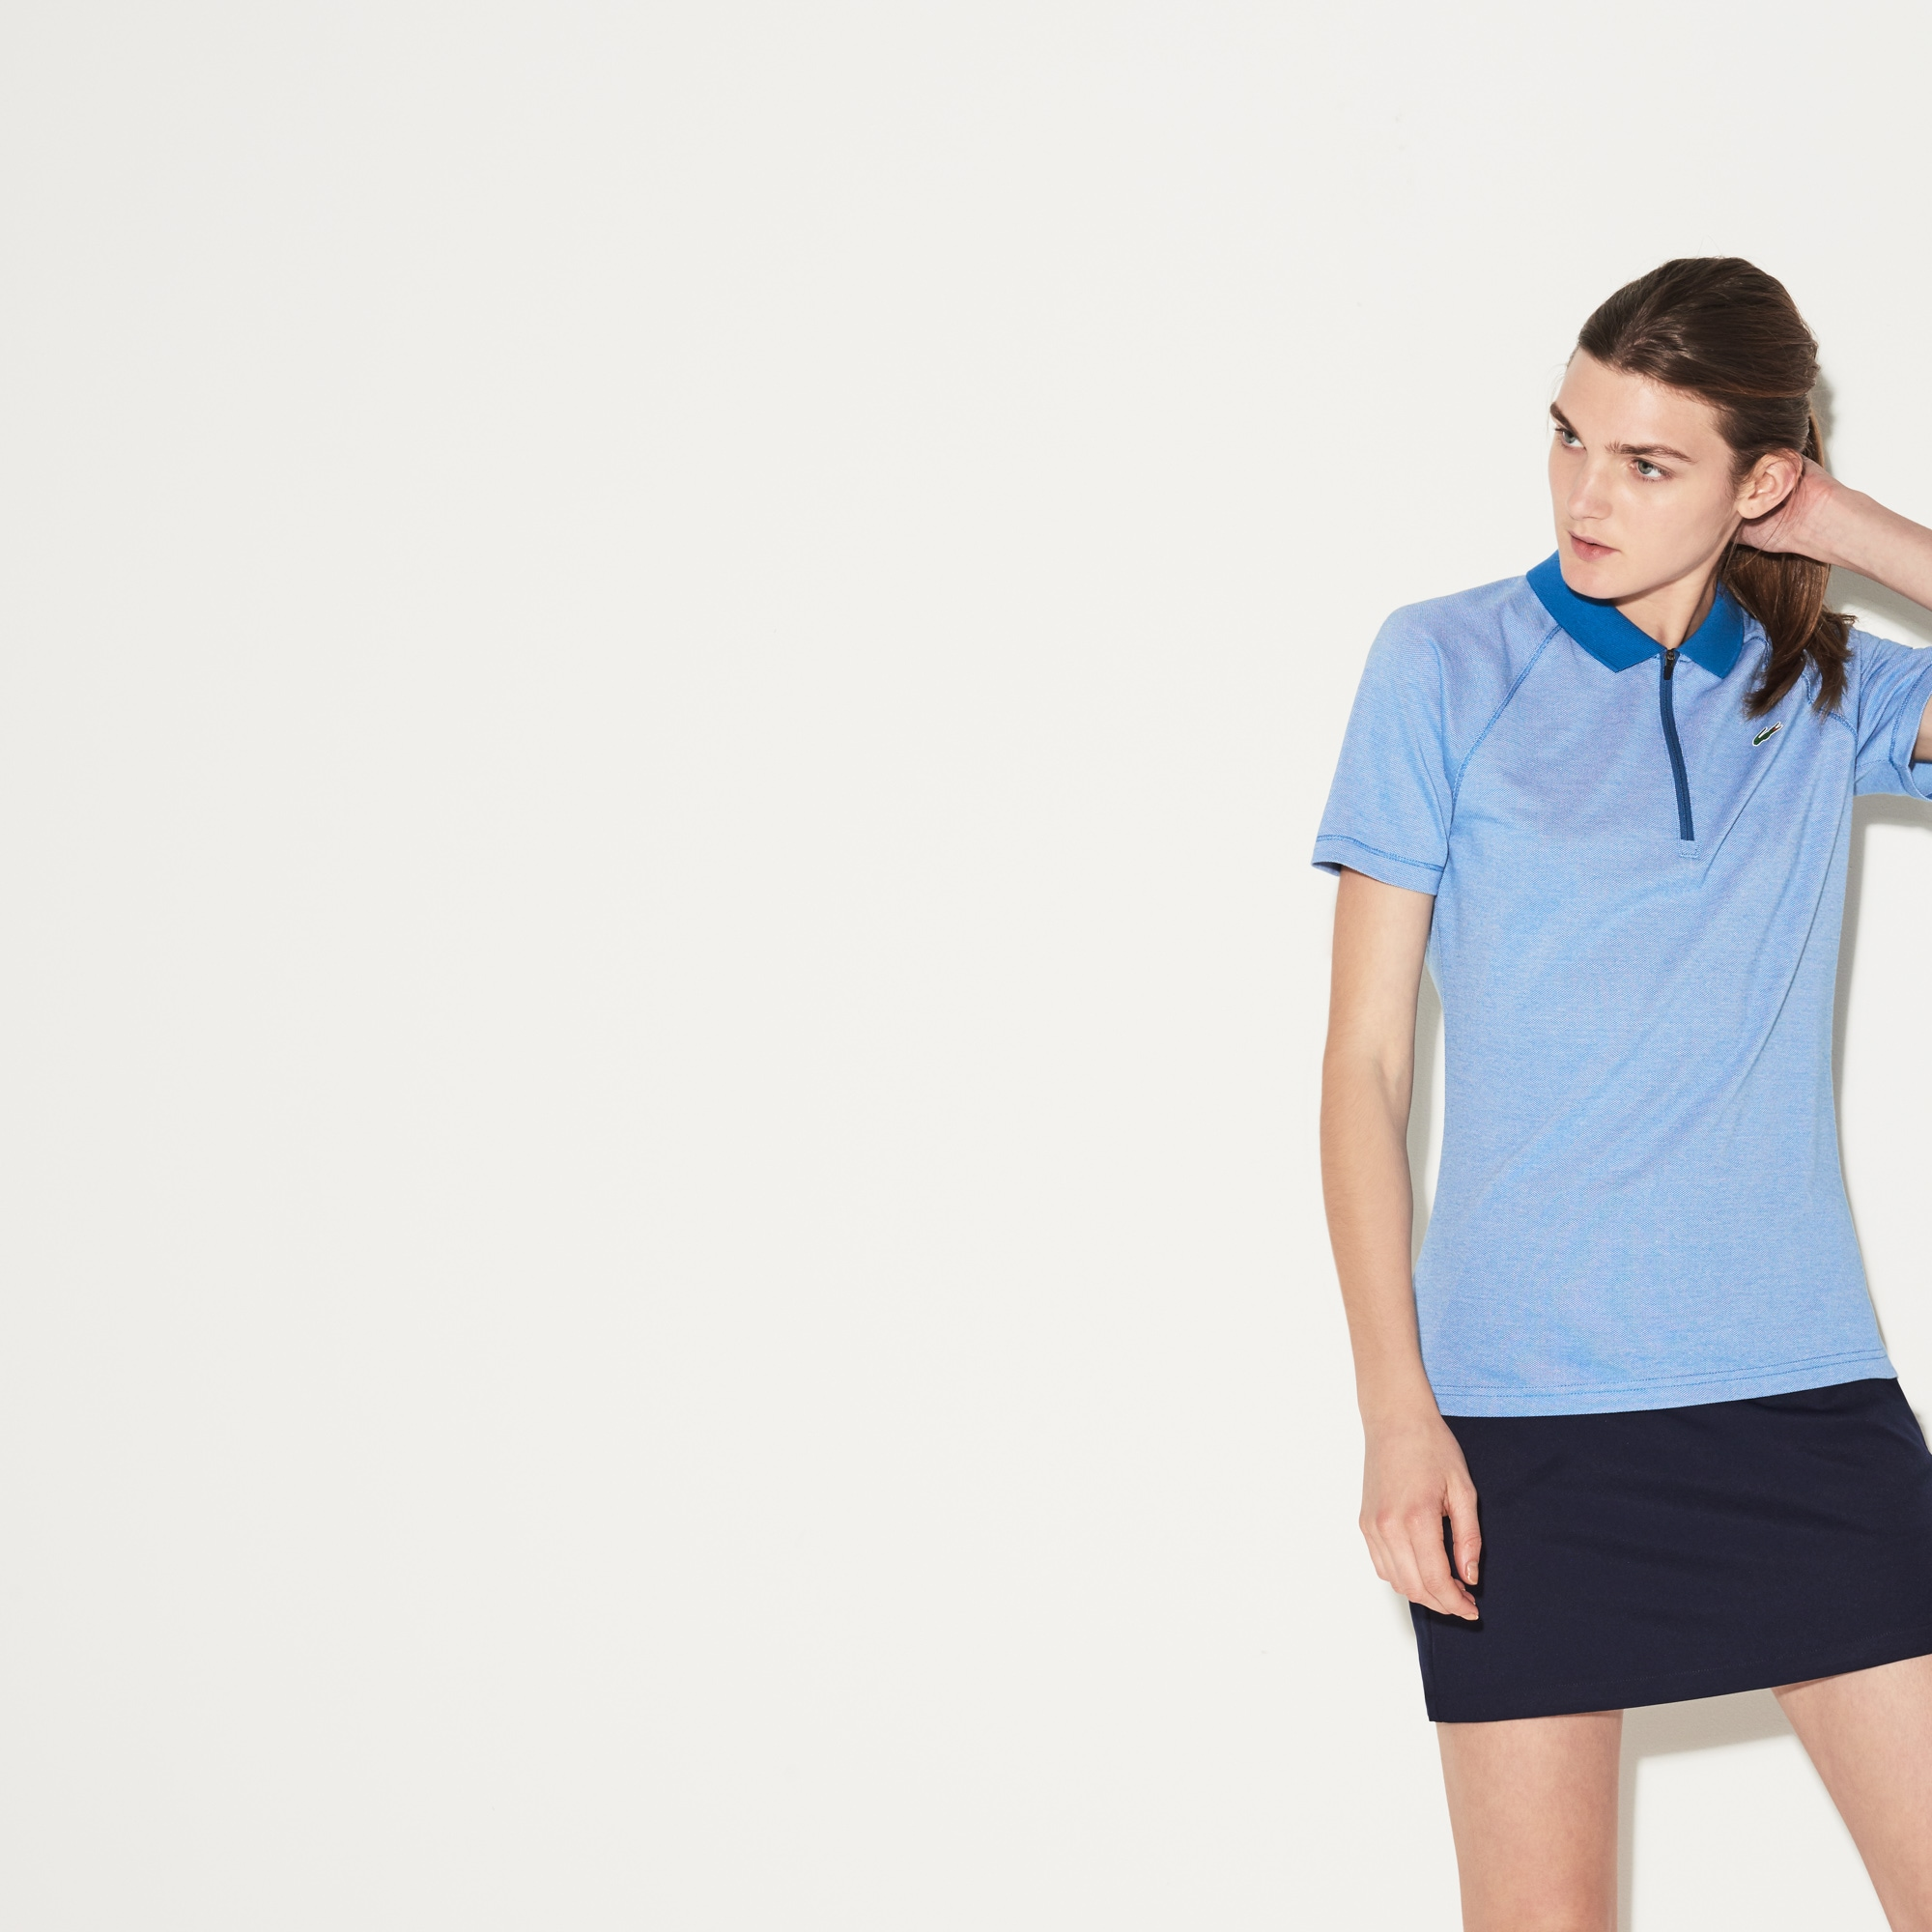 Women's SPORT Zip Neck Golf Polo